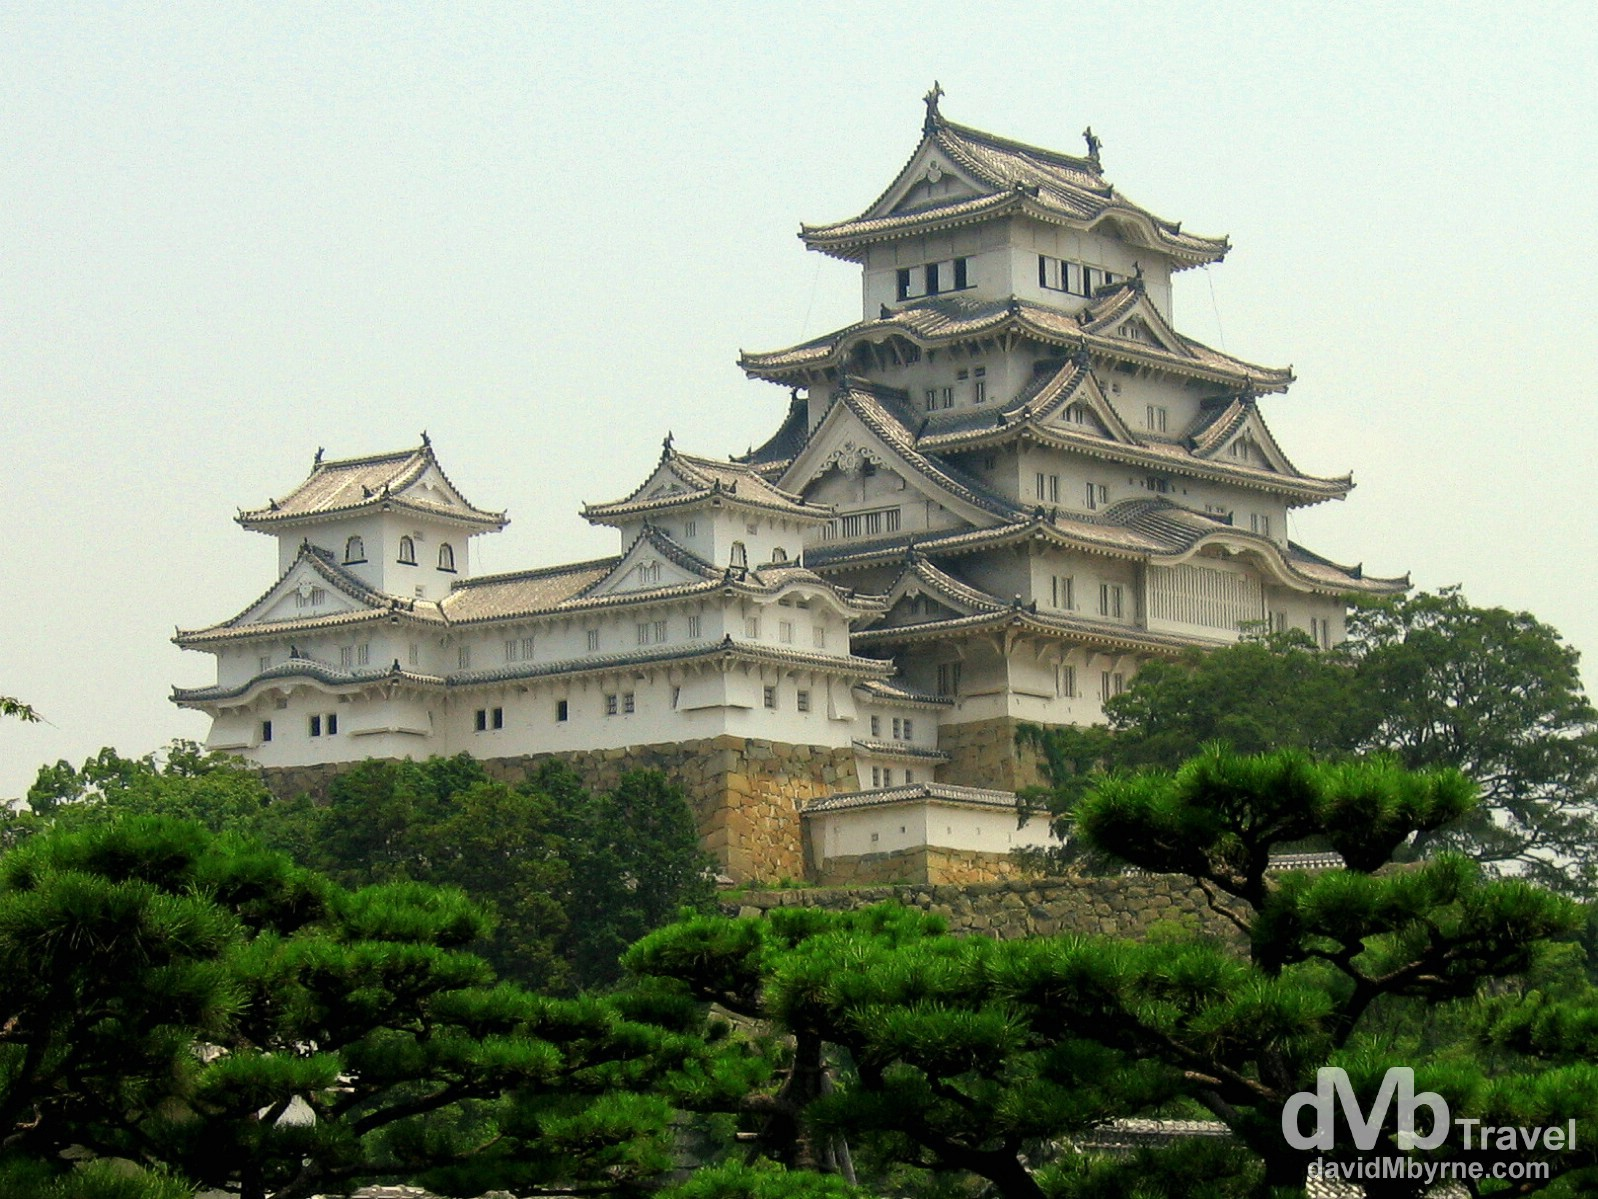 Himeji Castle as seen from the western bailey of the castle complex in the city of Himeji, Honshu, Japan. July 22nd 2005.